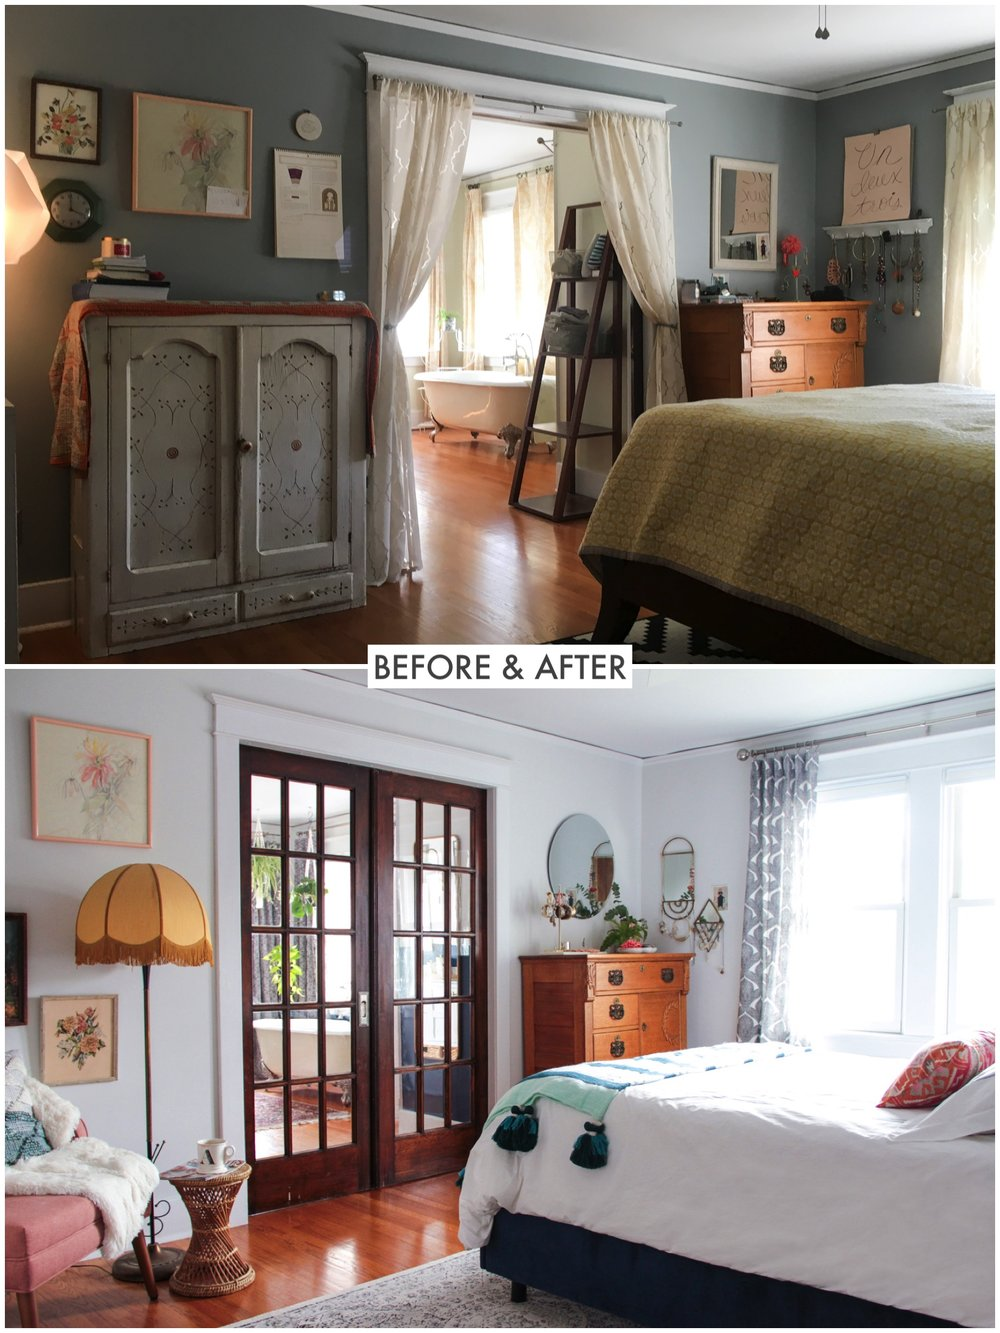 Bohemian Parisian Master Bedroom Before/After